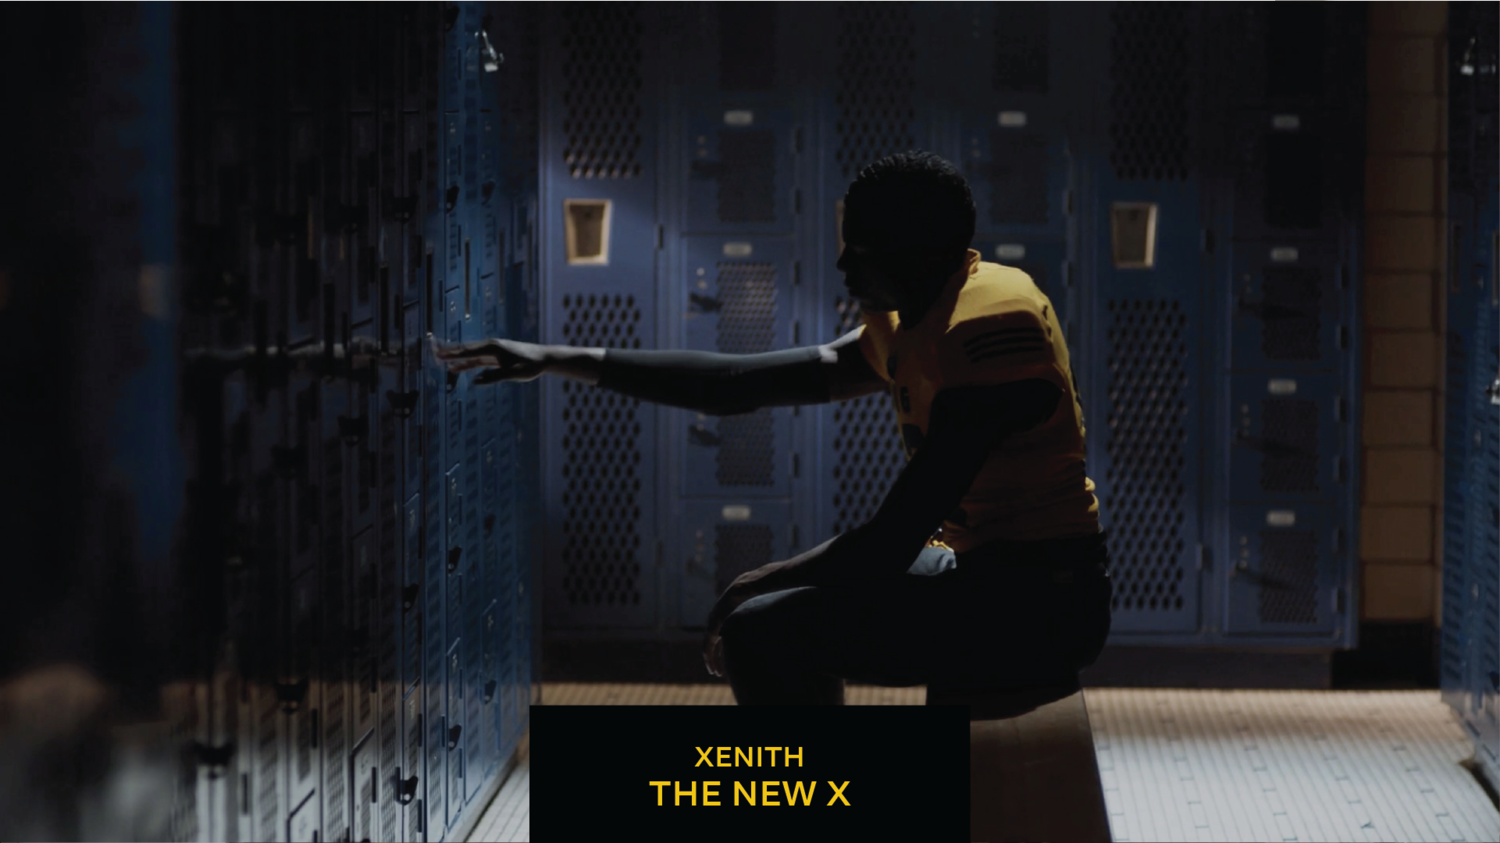 xenith new x thumb.png